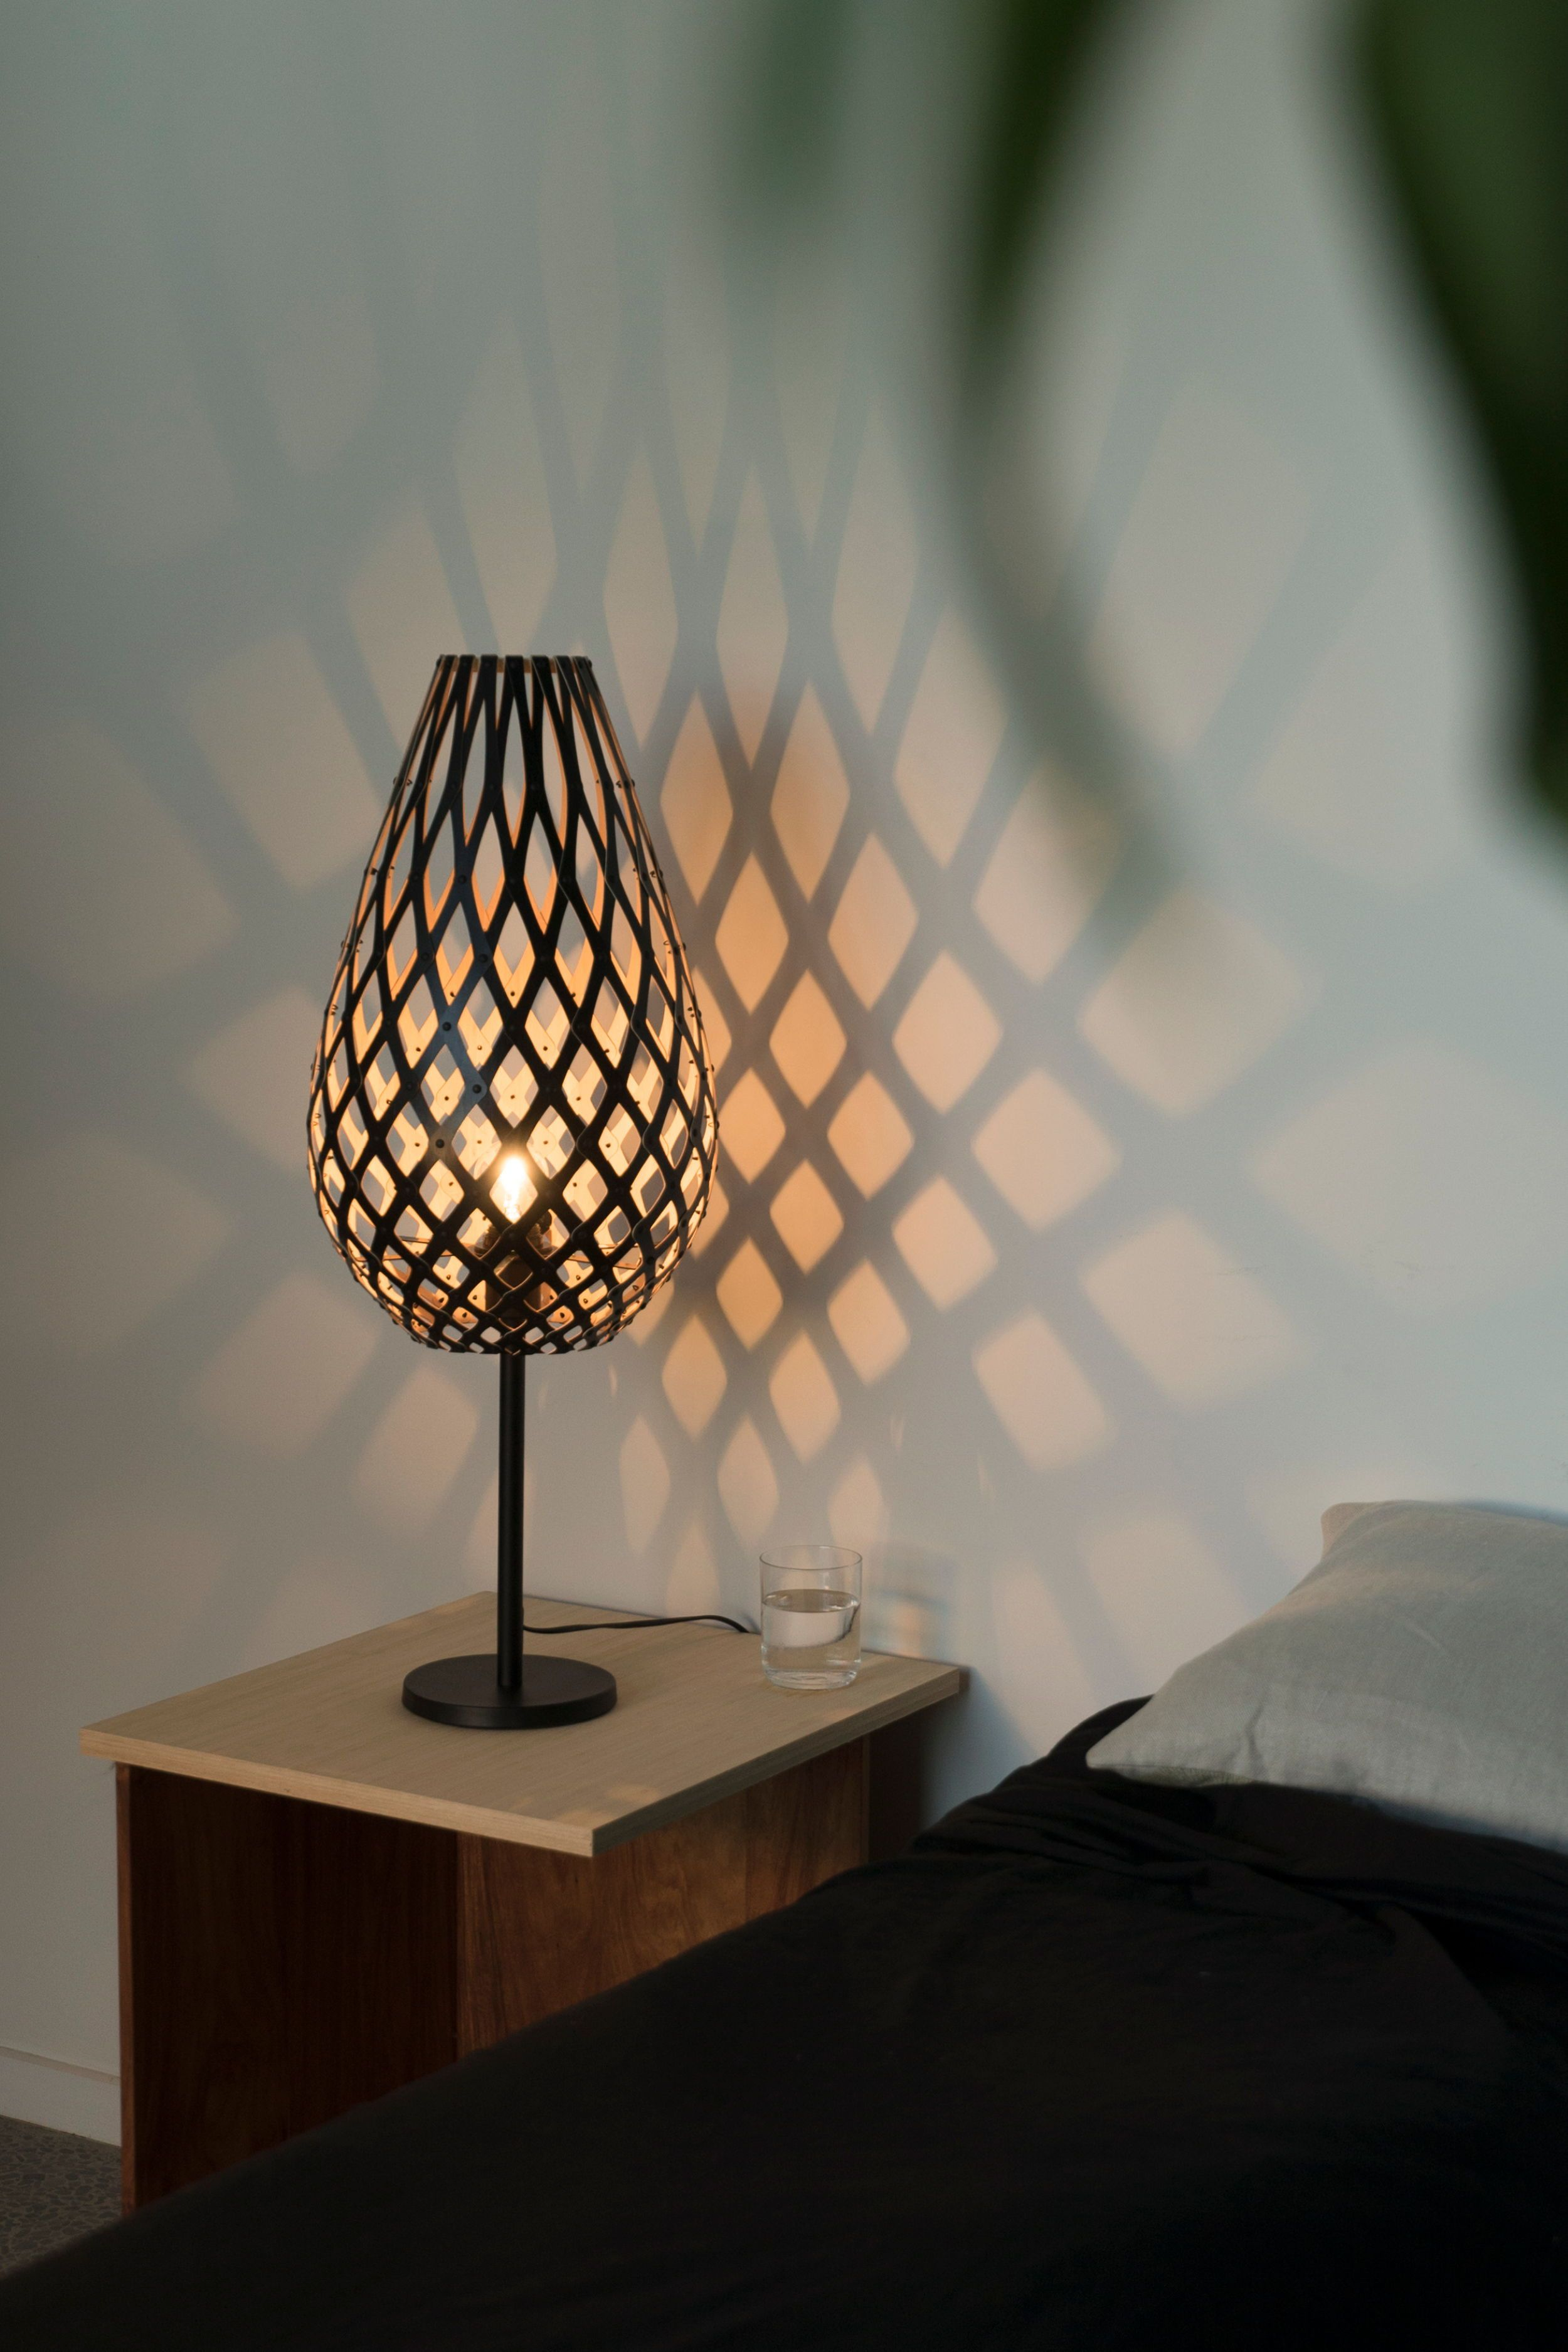 Customers Worldwide Promote David Trubridge Lights The Shadow Casting Lights Synonymous With The Company Name Can Be Sp Lamp Table Lamp David Trubridge Lights